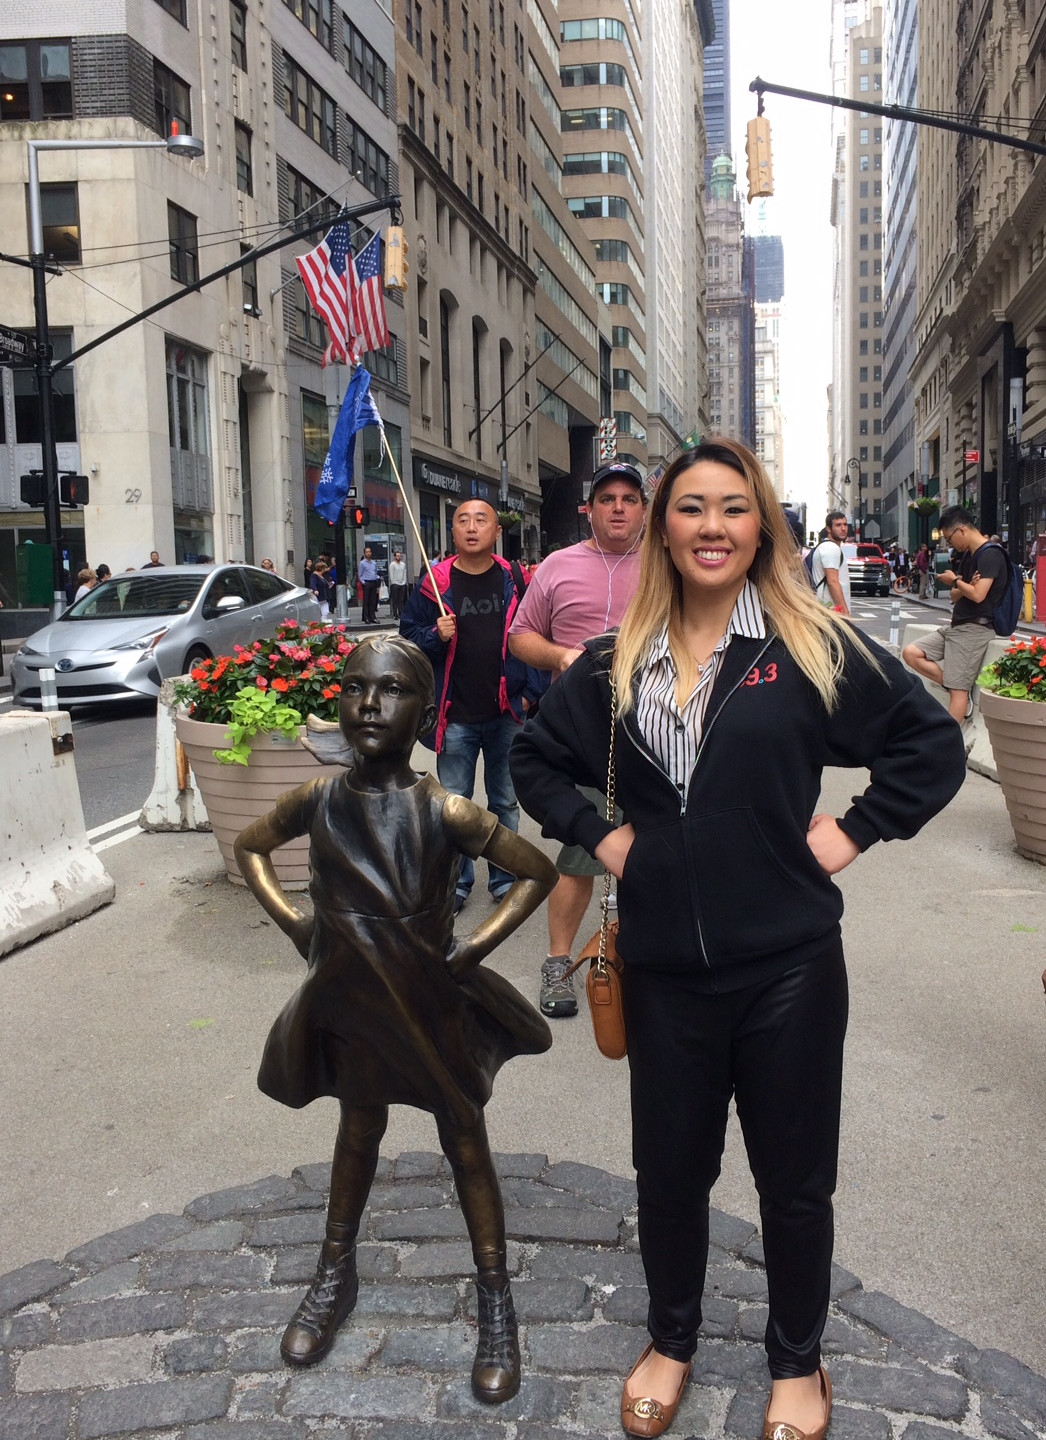 Me and Fearless Girl